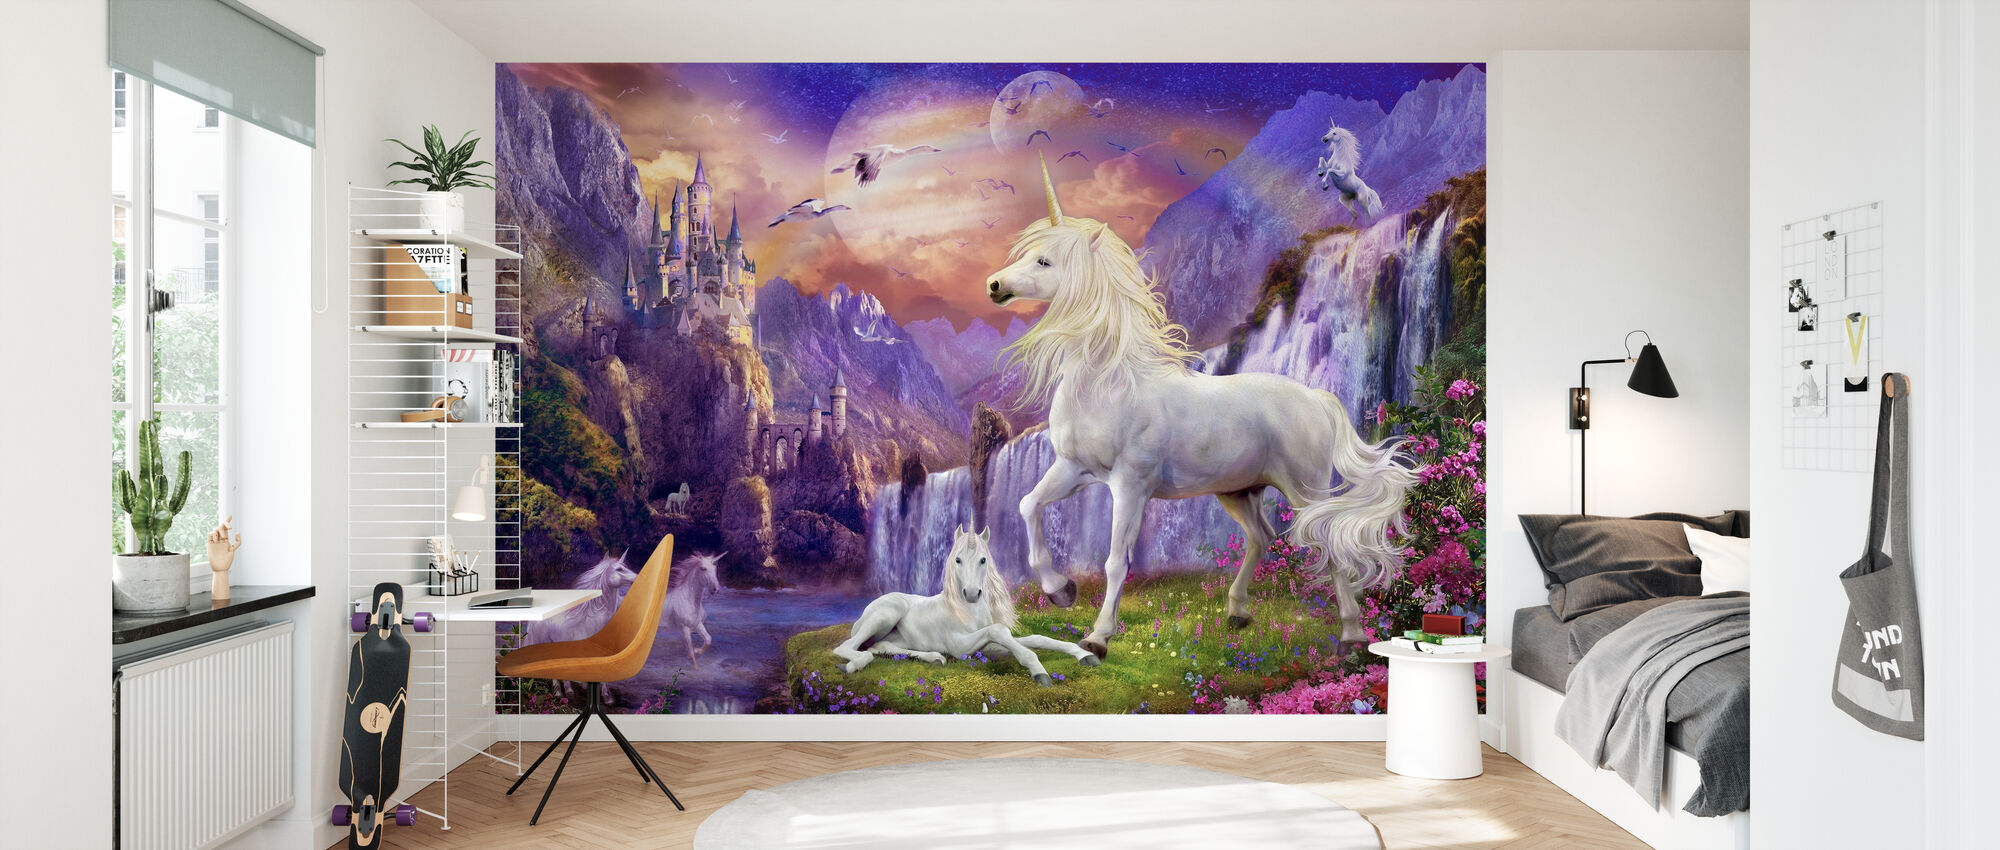 Early Evening - Wallpaper - Kids Room